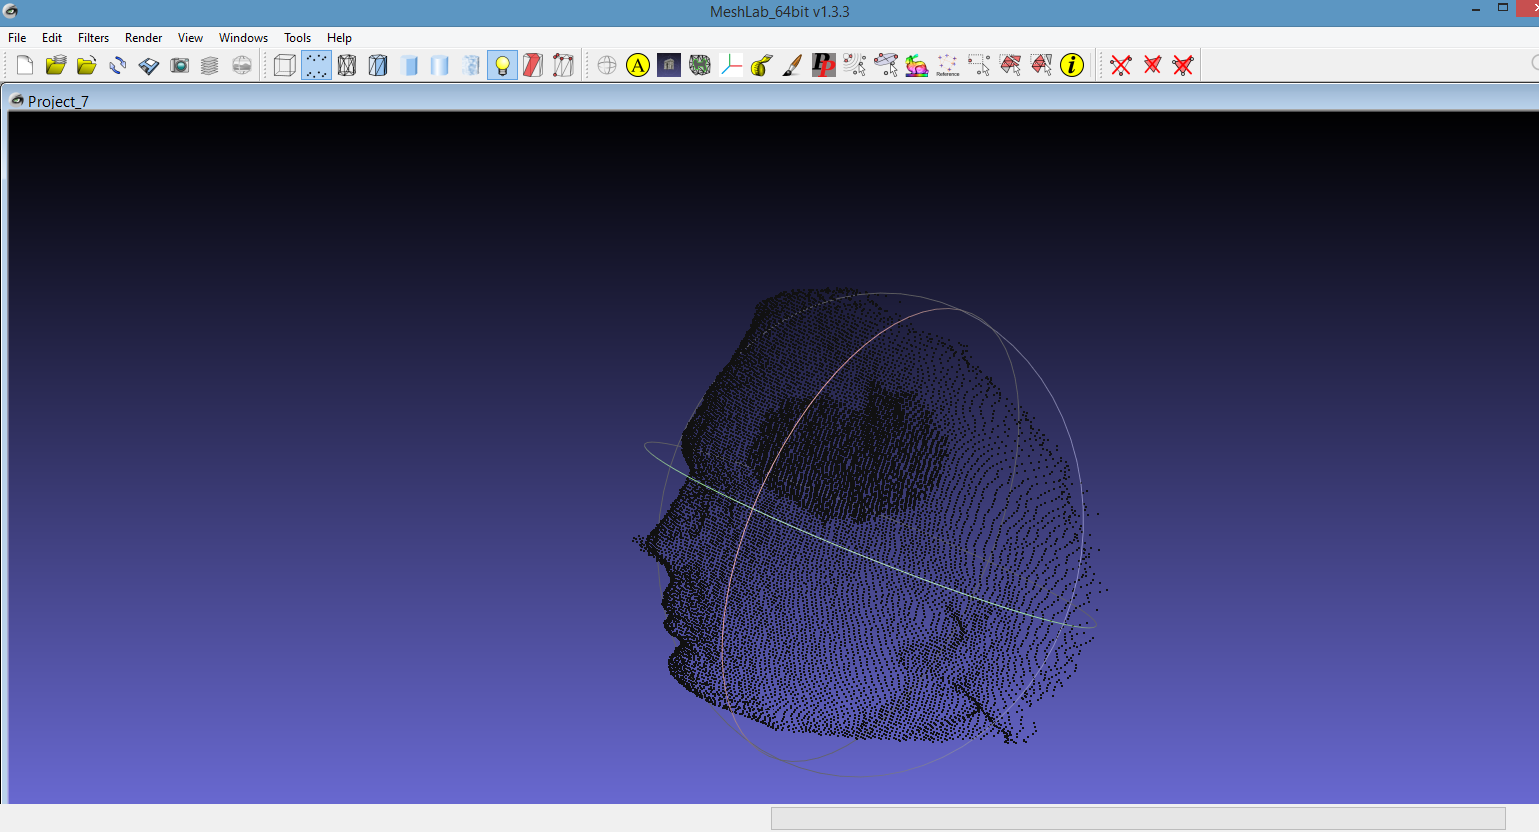 Kinect v2 Point Cloud using VTK for visualisation - CodeProject